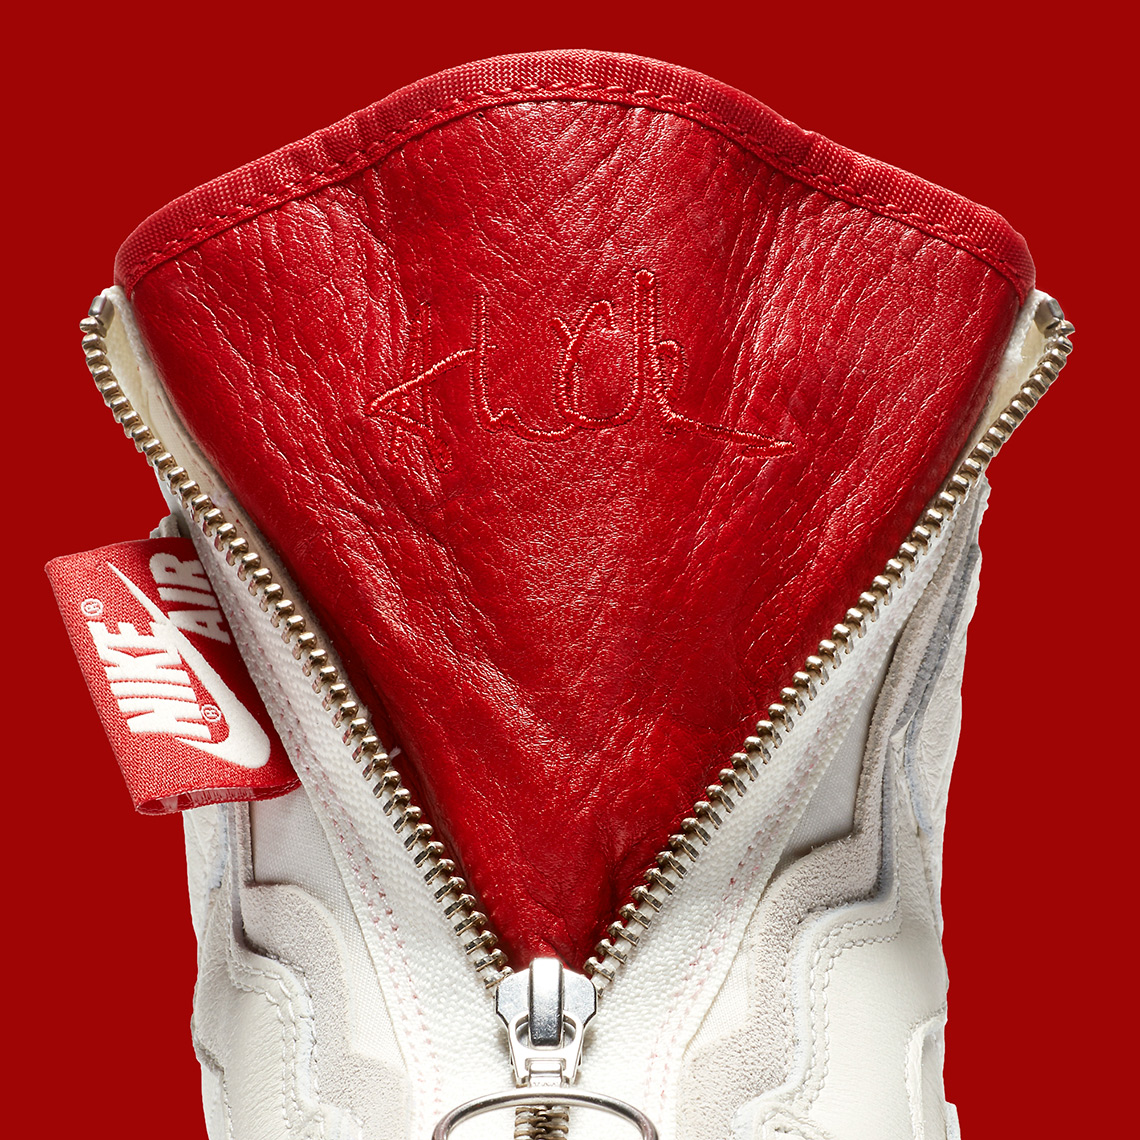 Vogue s Anna Wintour Gets Honor Of Being Jordan Brand s First ... 39496529d521